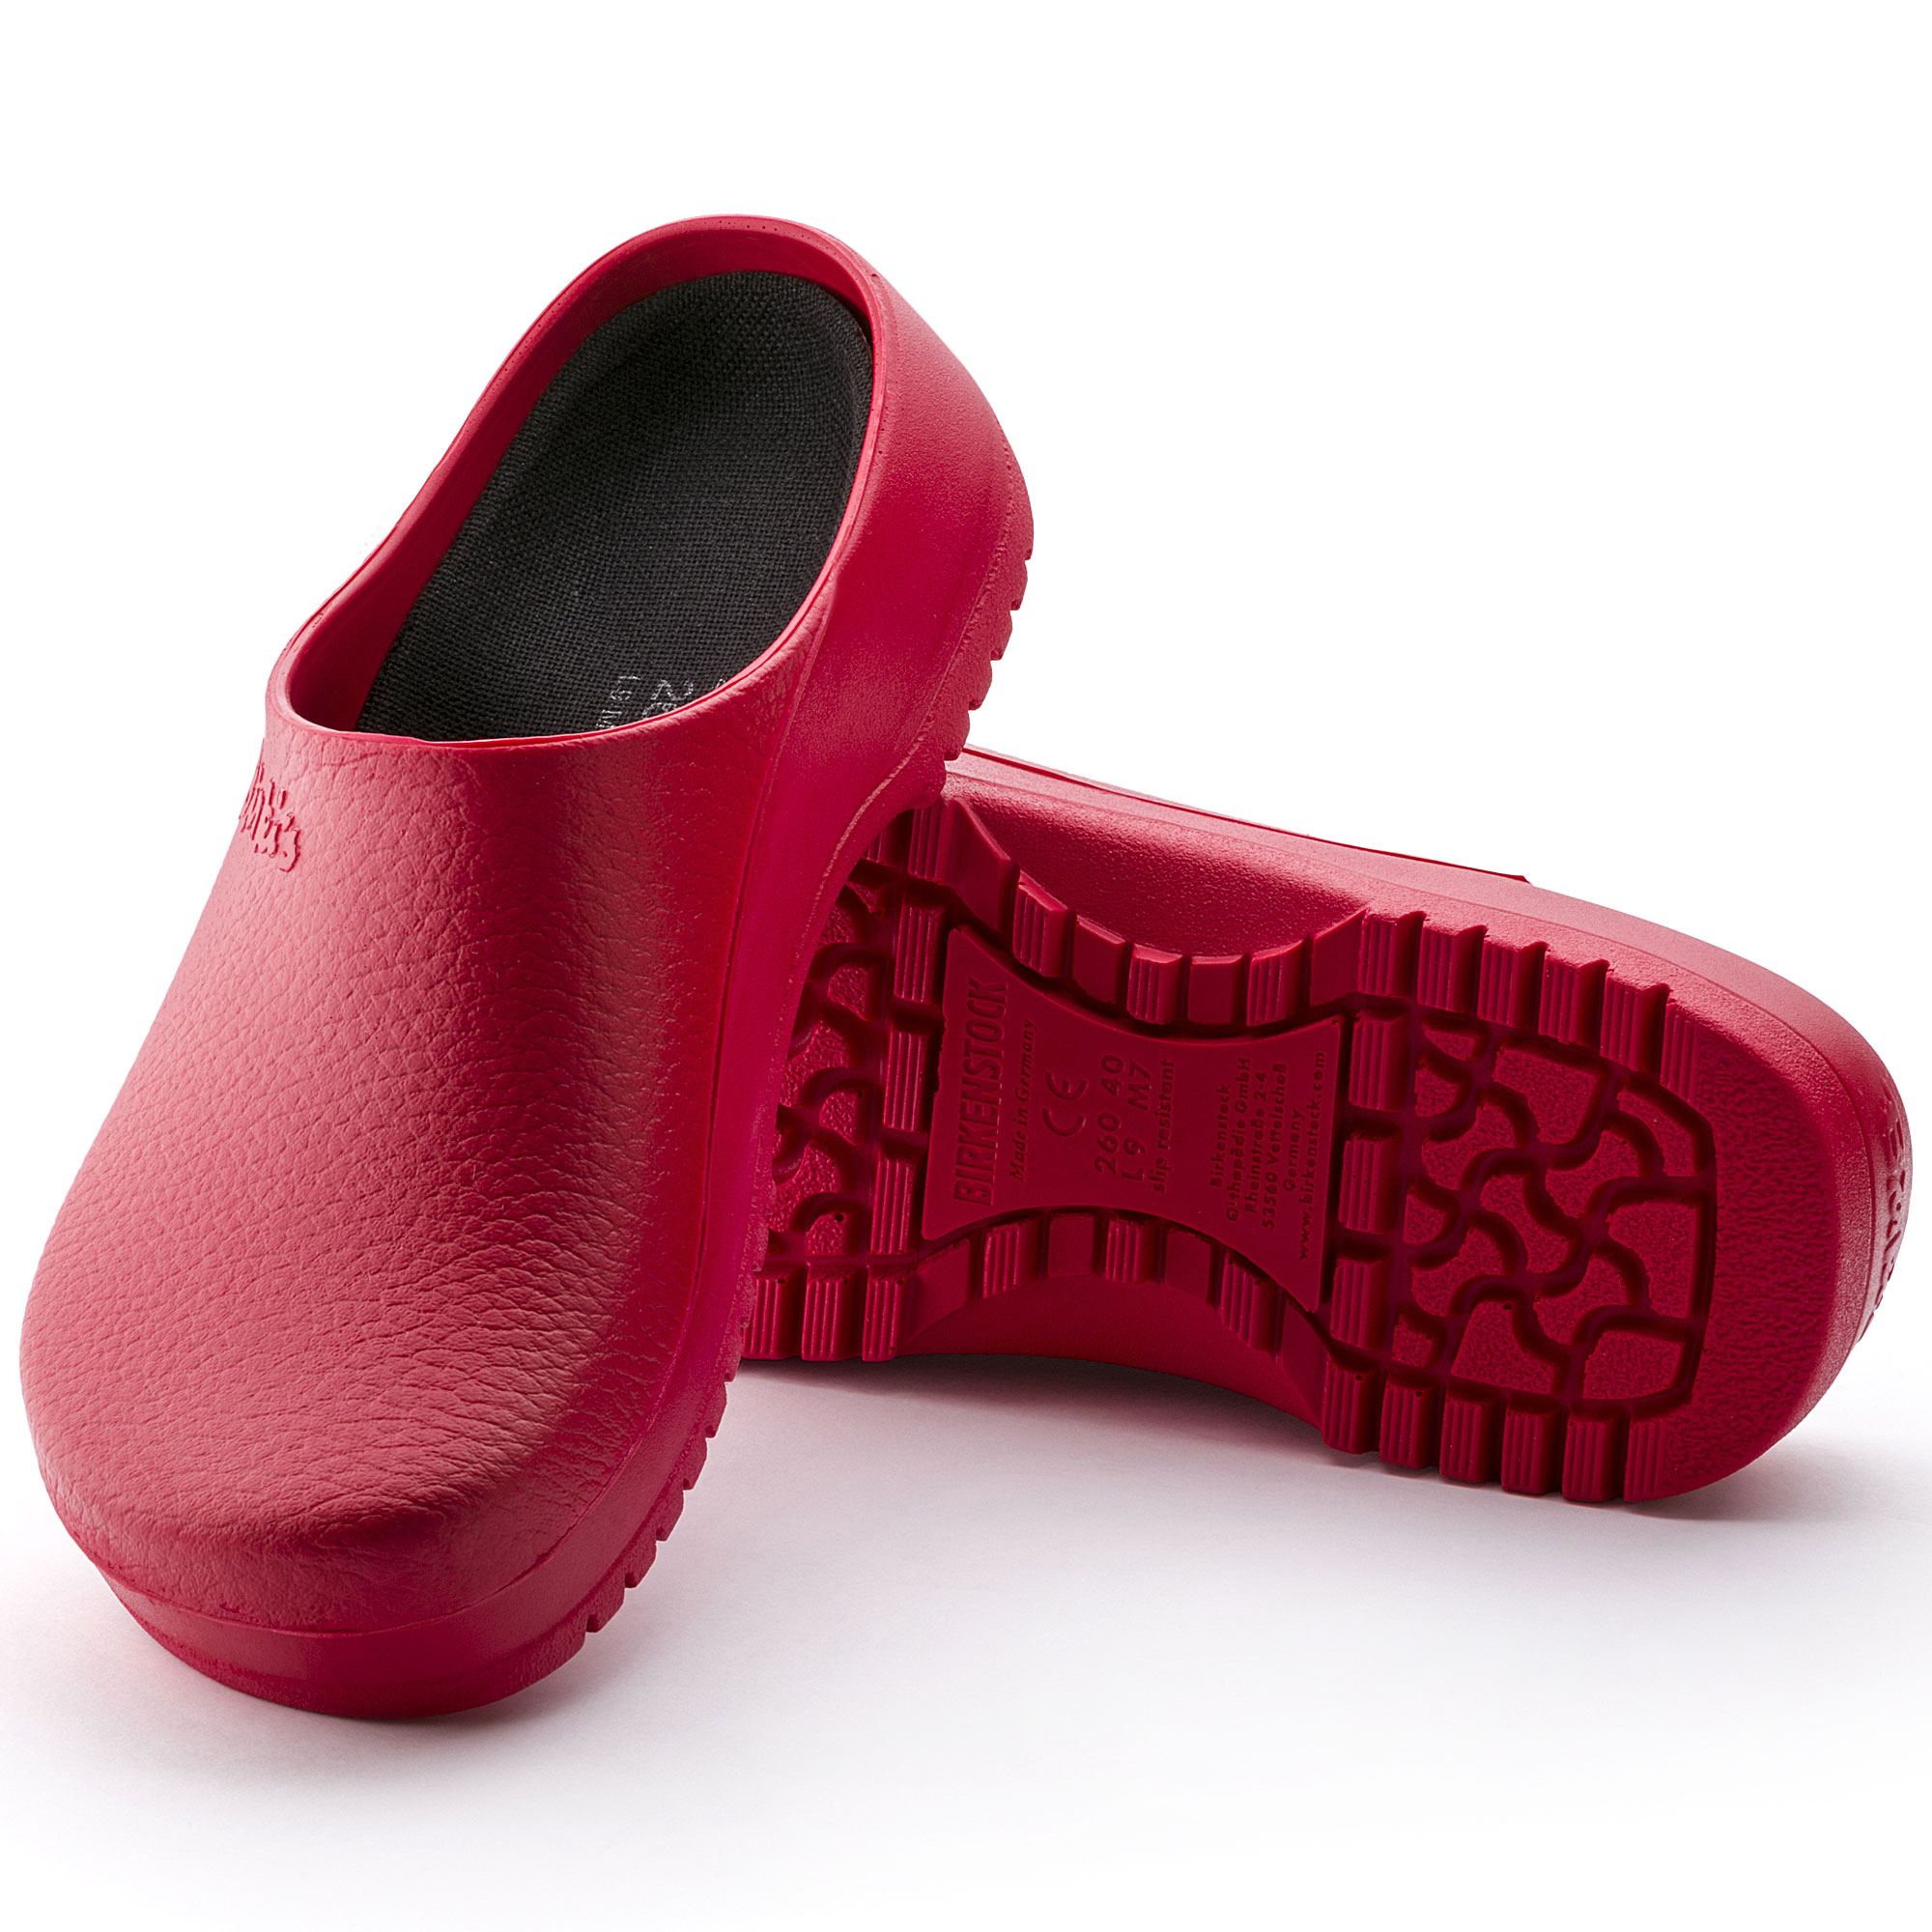 Birkenstock Birkis Super Birki PU Red Clogs